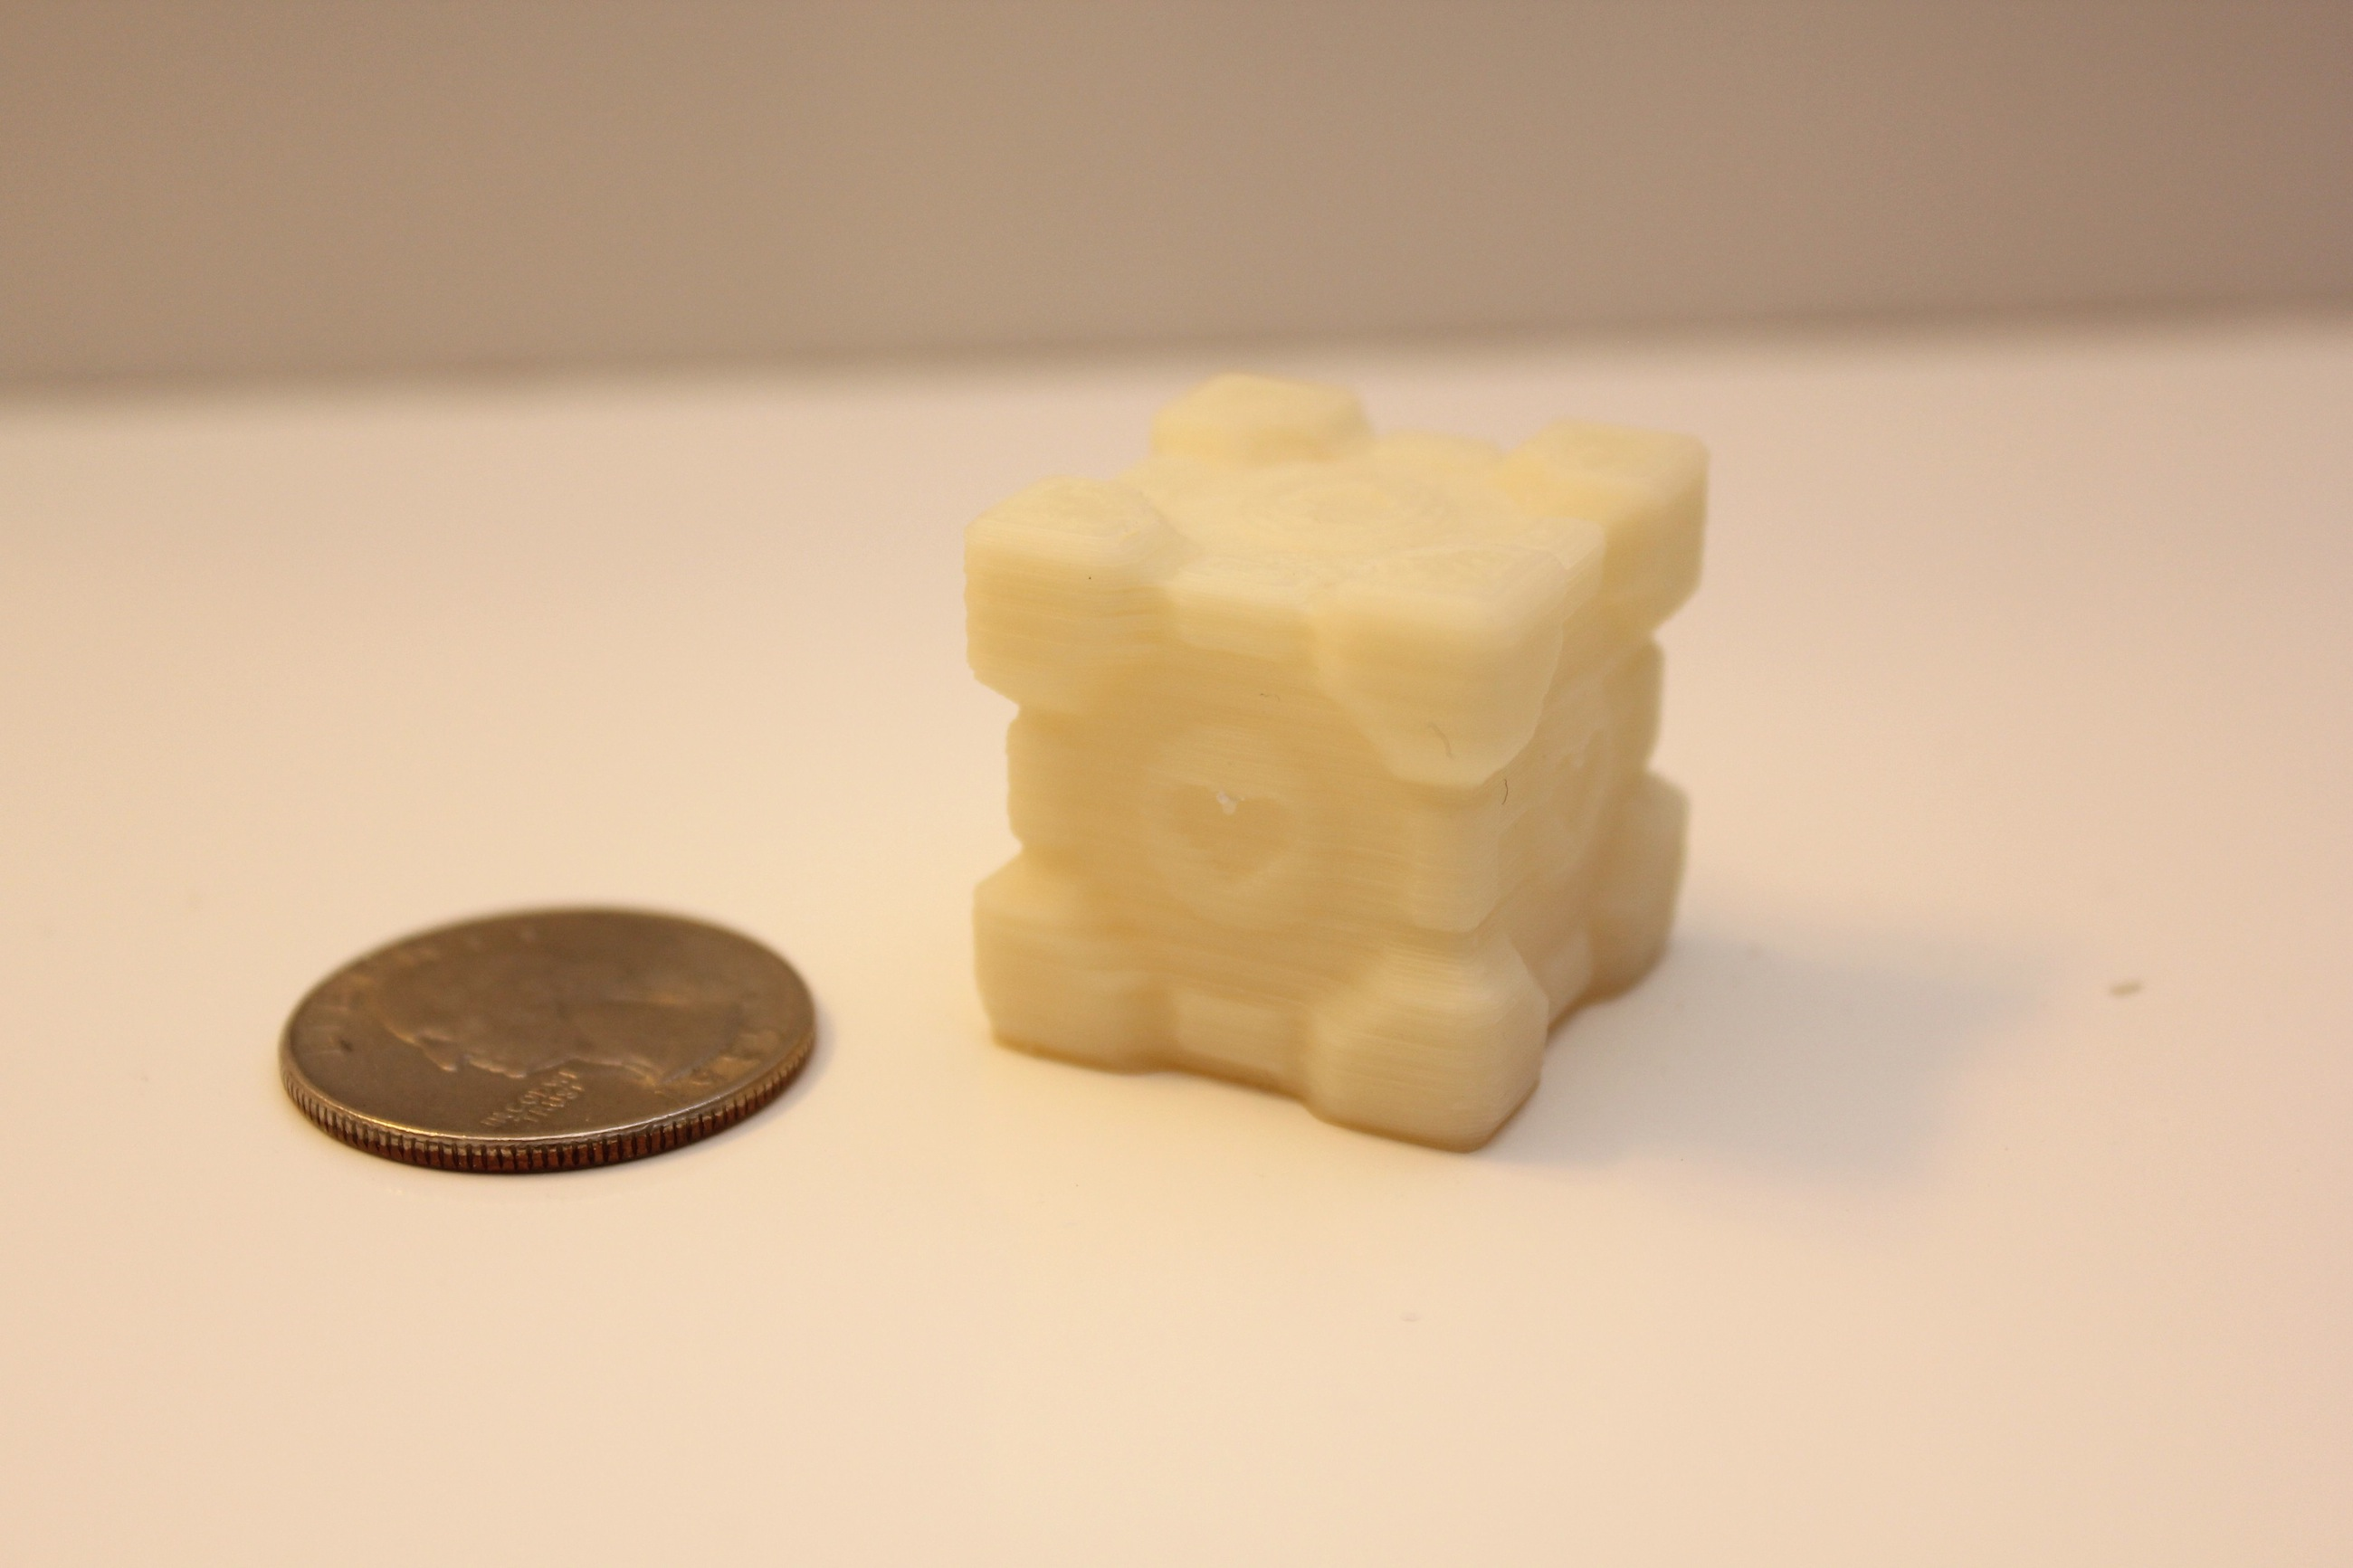 Companion Cube and a quarter for comparison printed on PrintrBot Plus